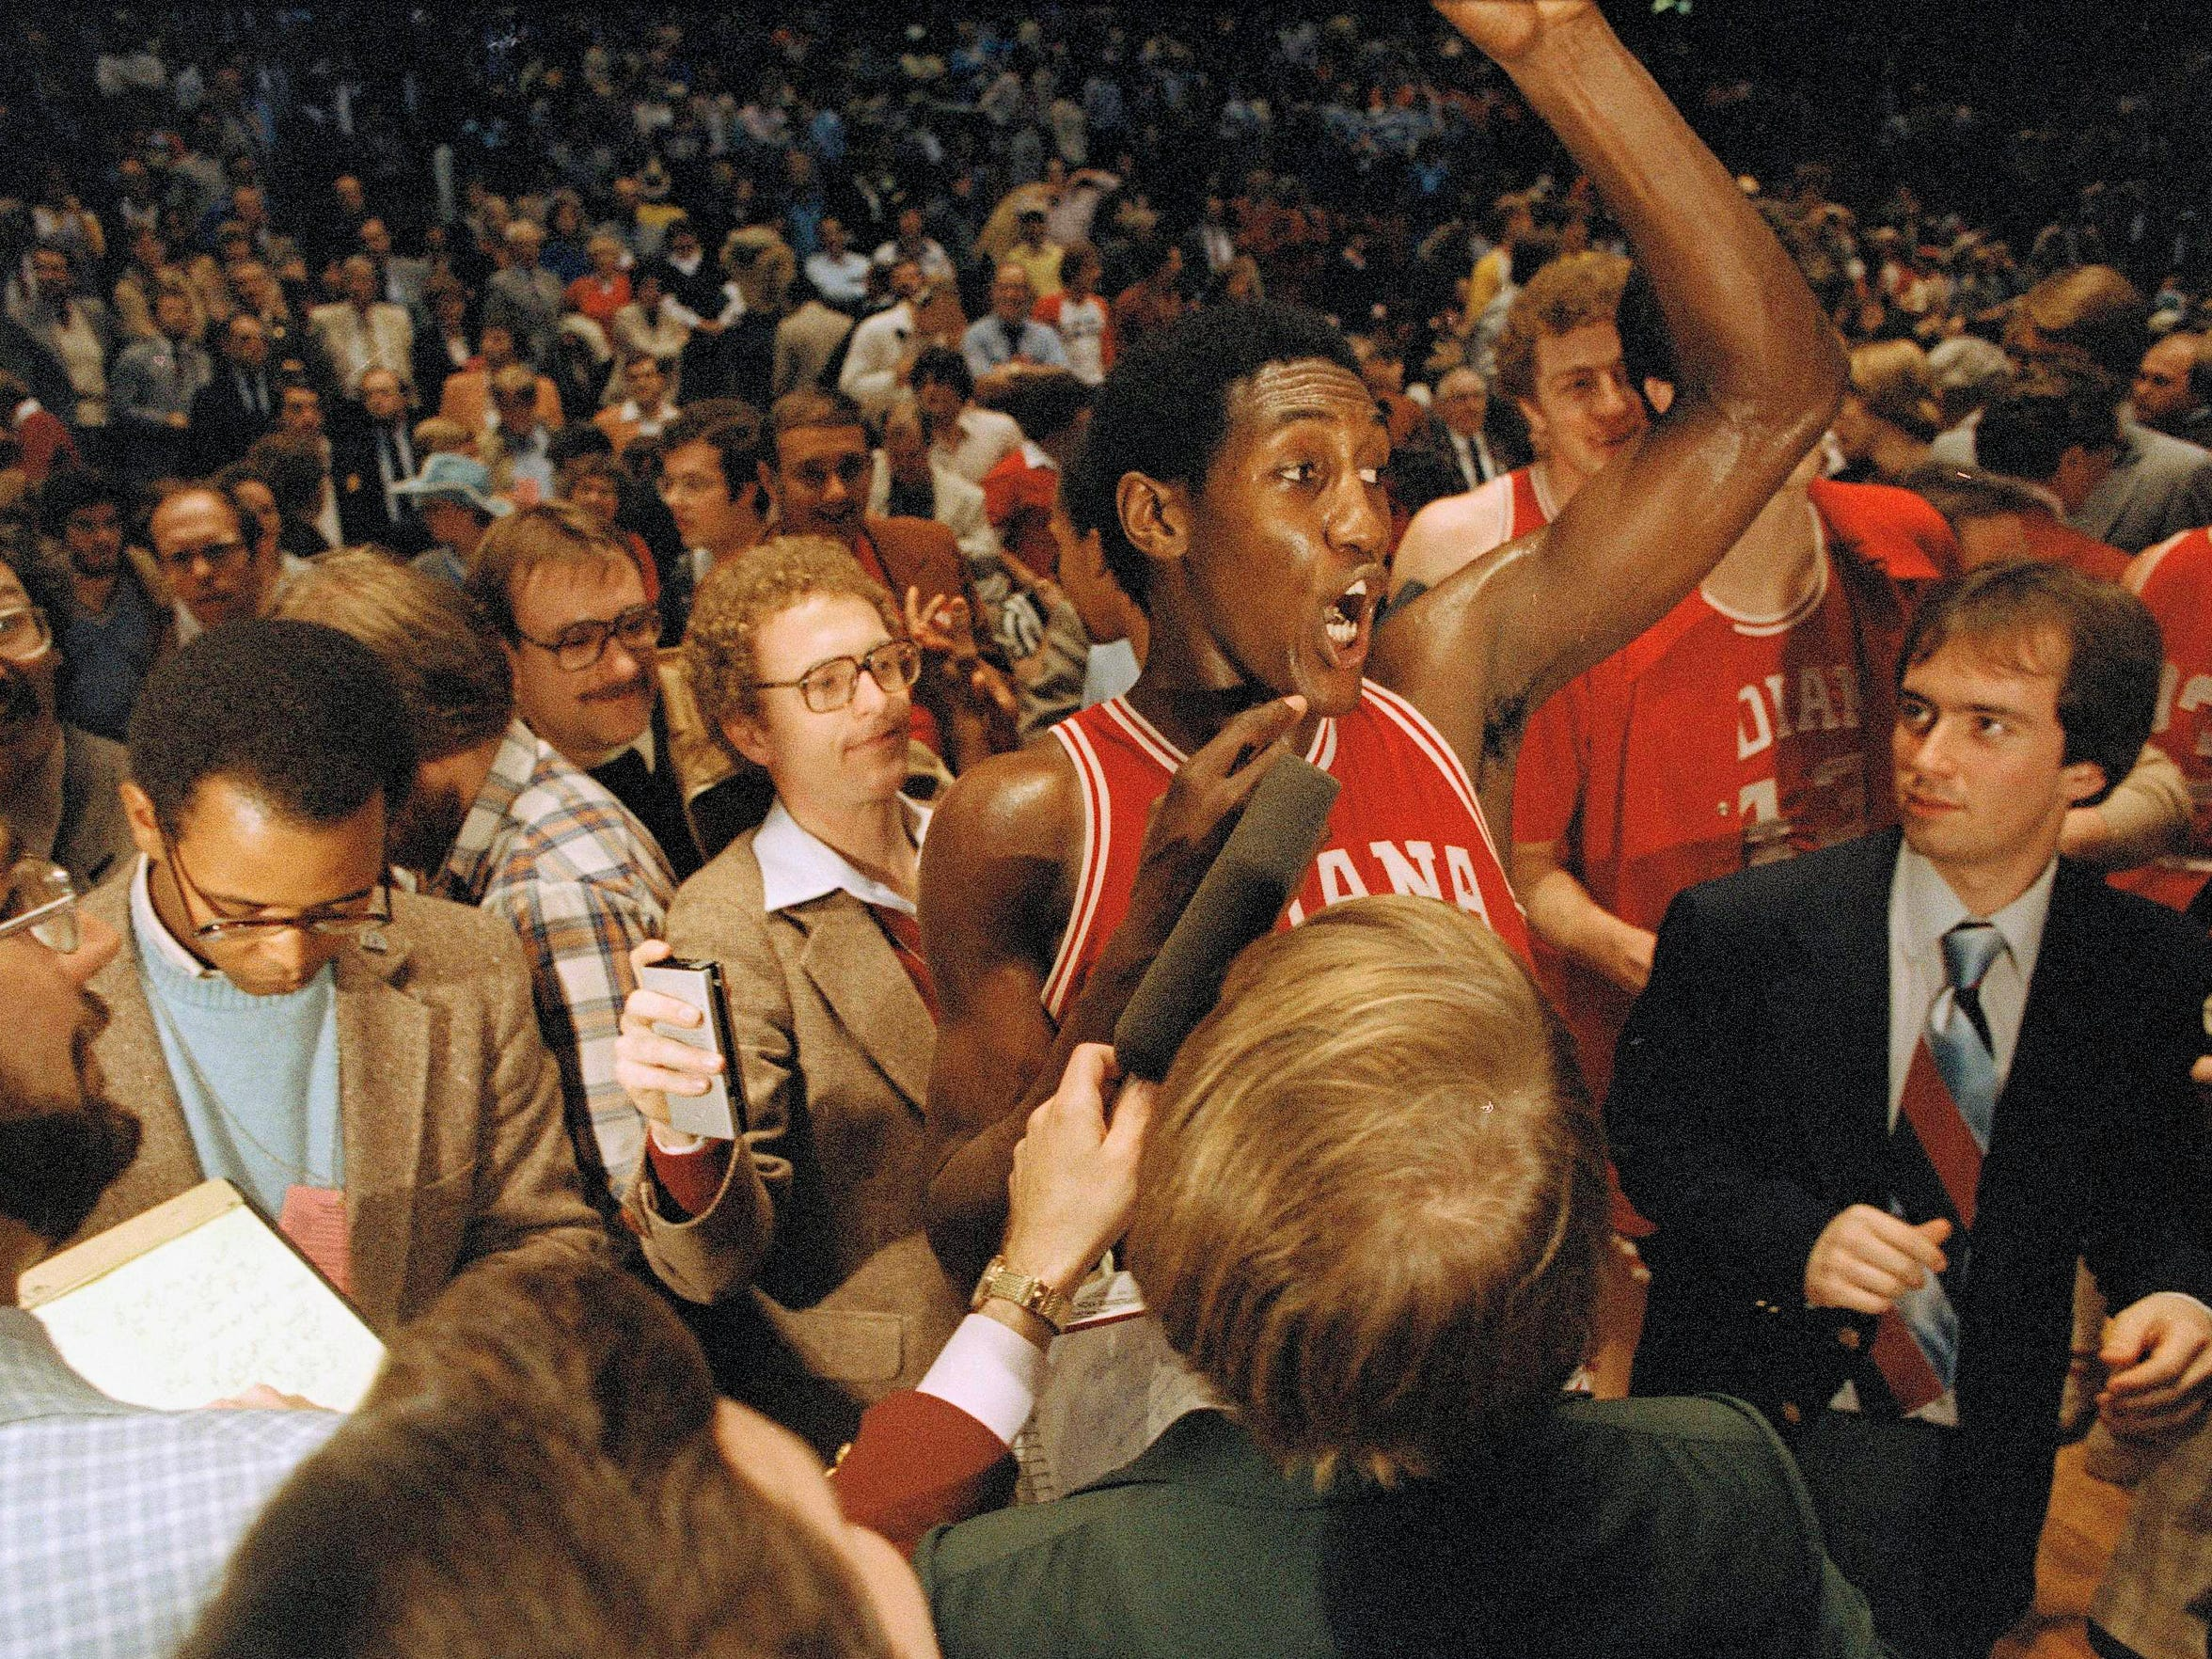 Ray Tolbert is surrounded by newsmen after his team won over North Carolina, 63-50, in the final NCAA championship game, March 31, 1981.